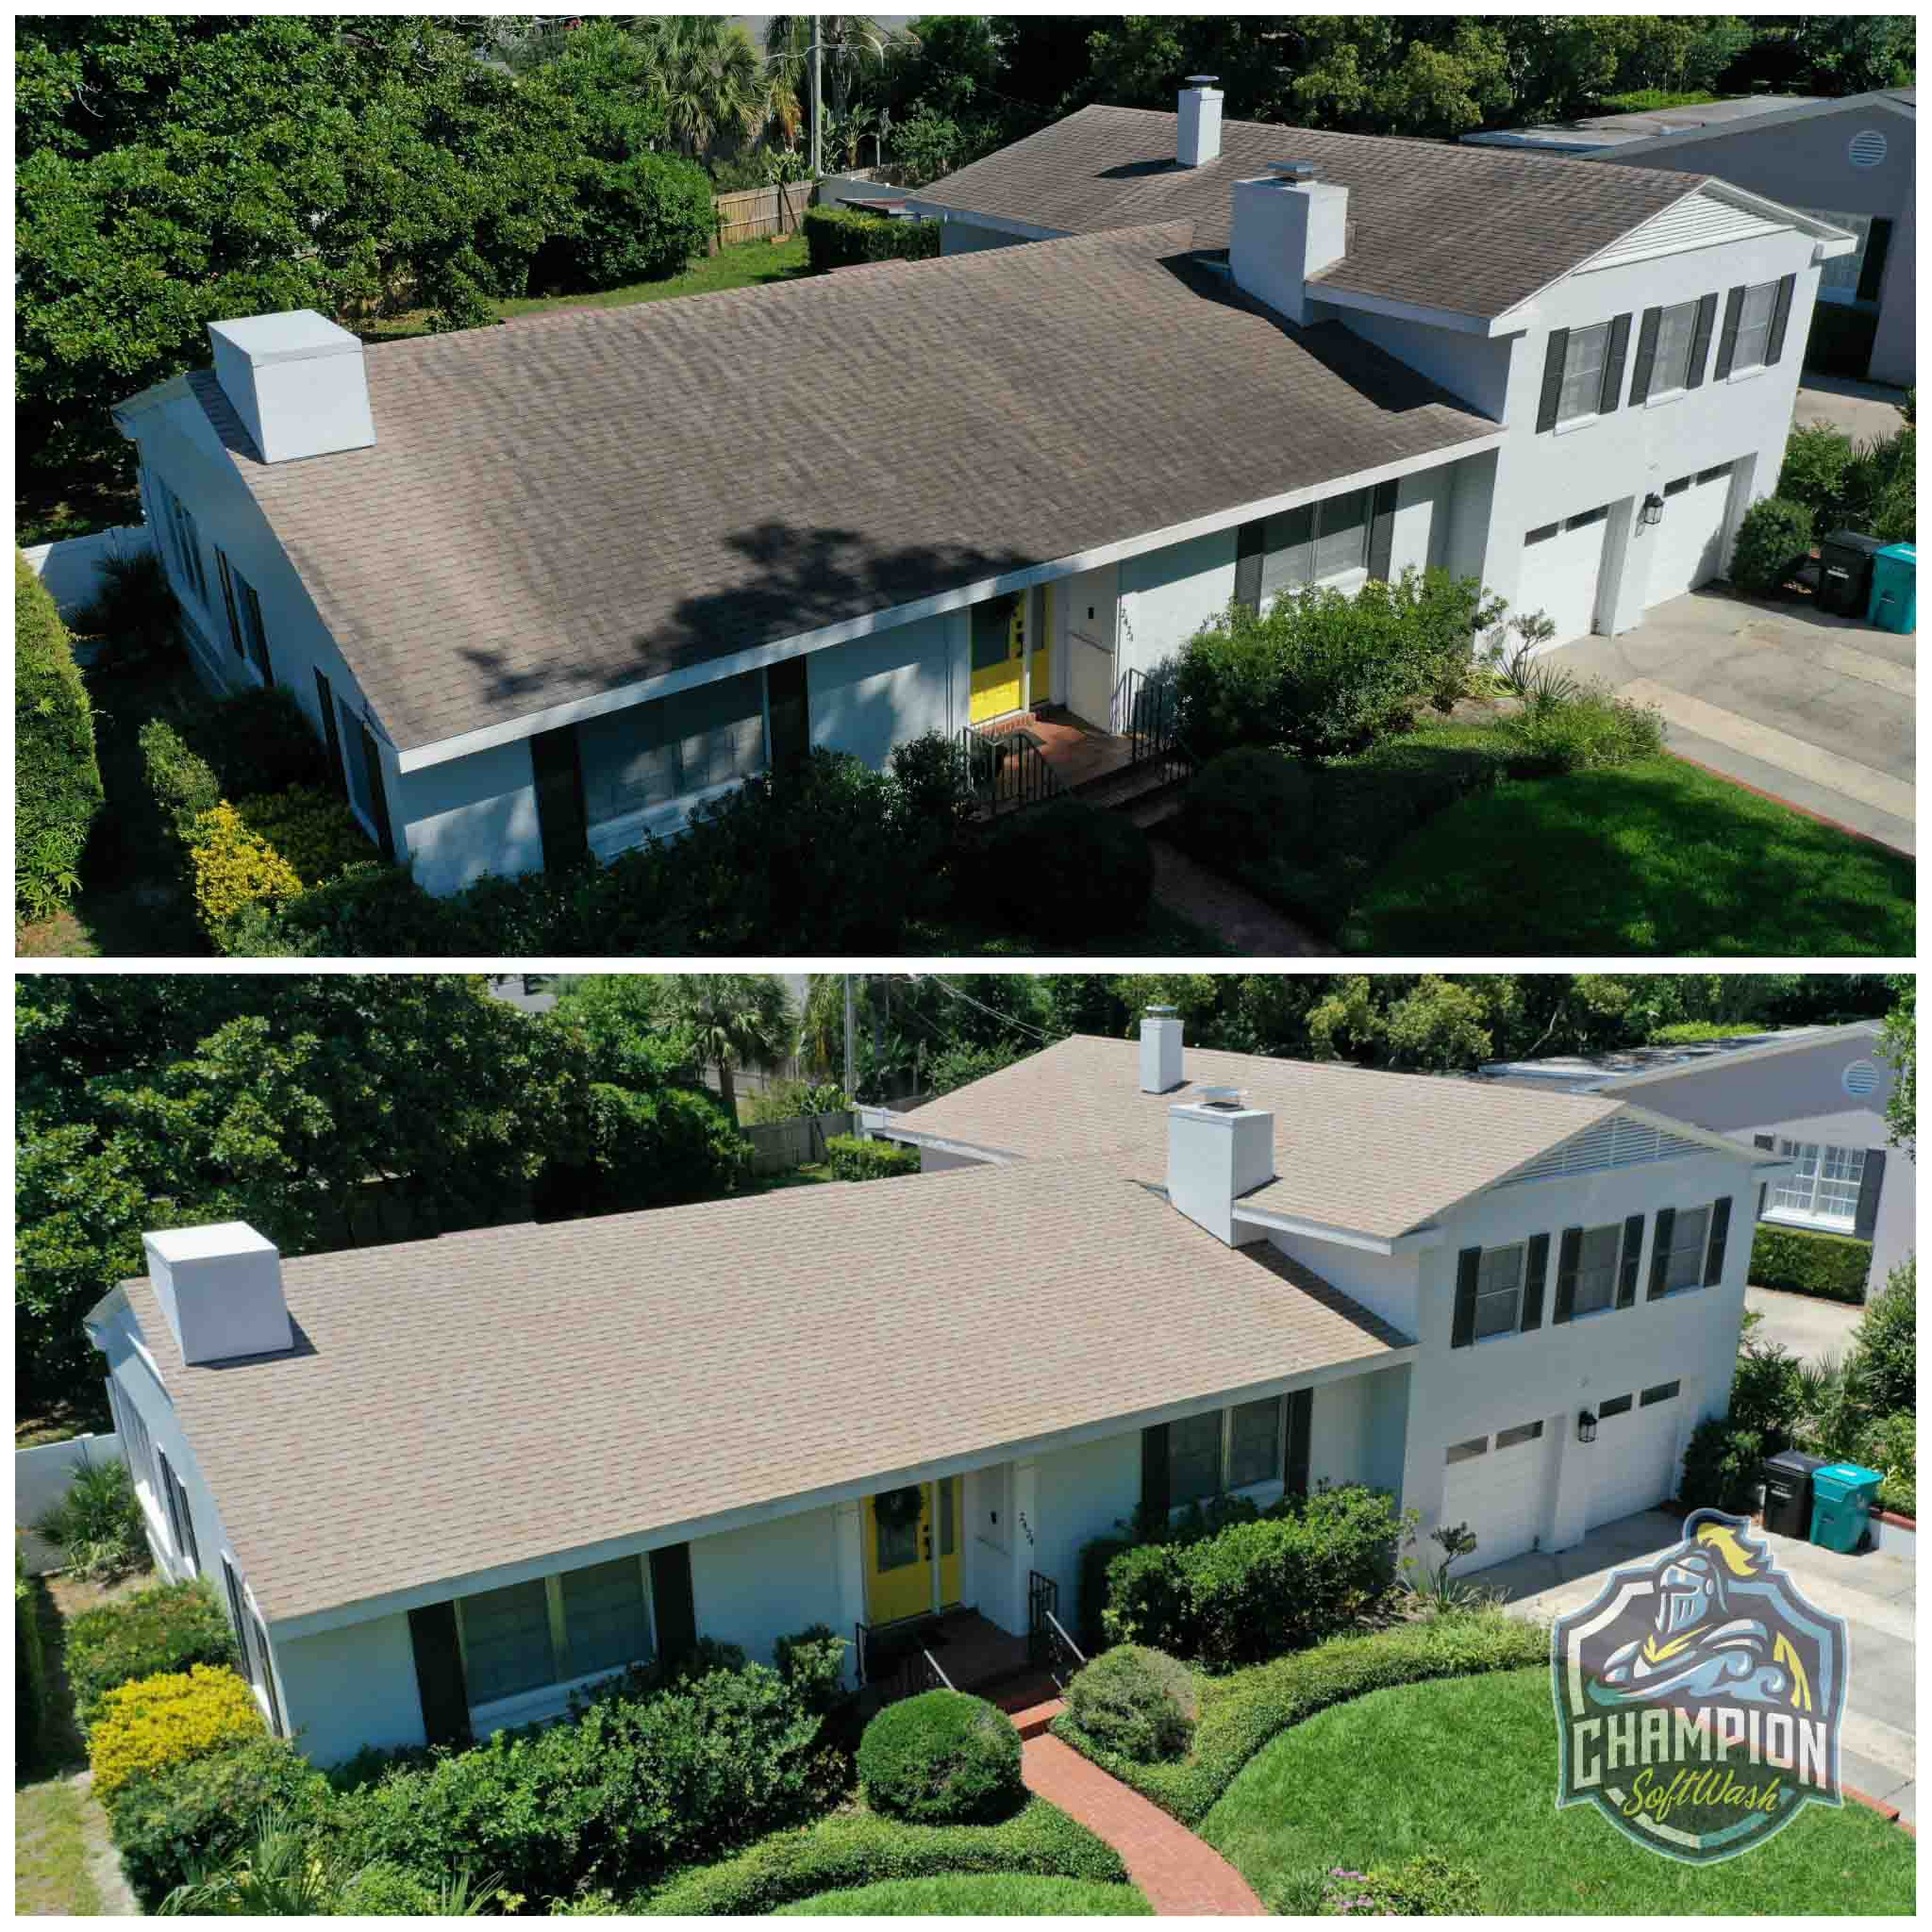 Roof Cleaning for realtor listing in Winter Park FL. Shingle Roof cleaning, skylight cleaning, flat roof cleaning